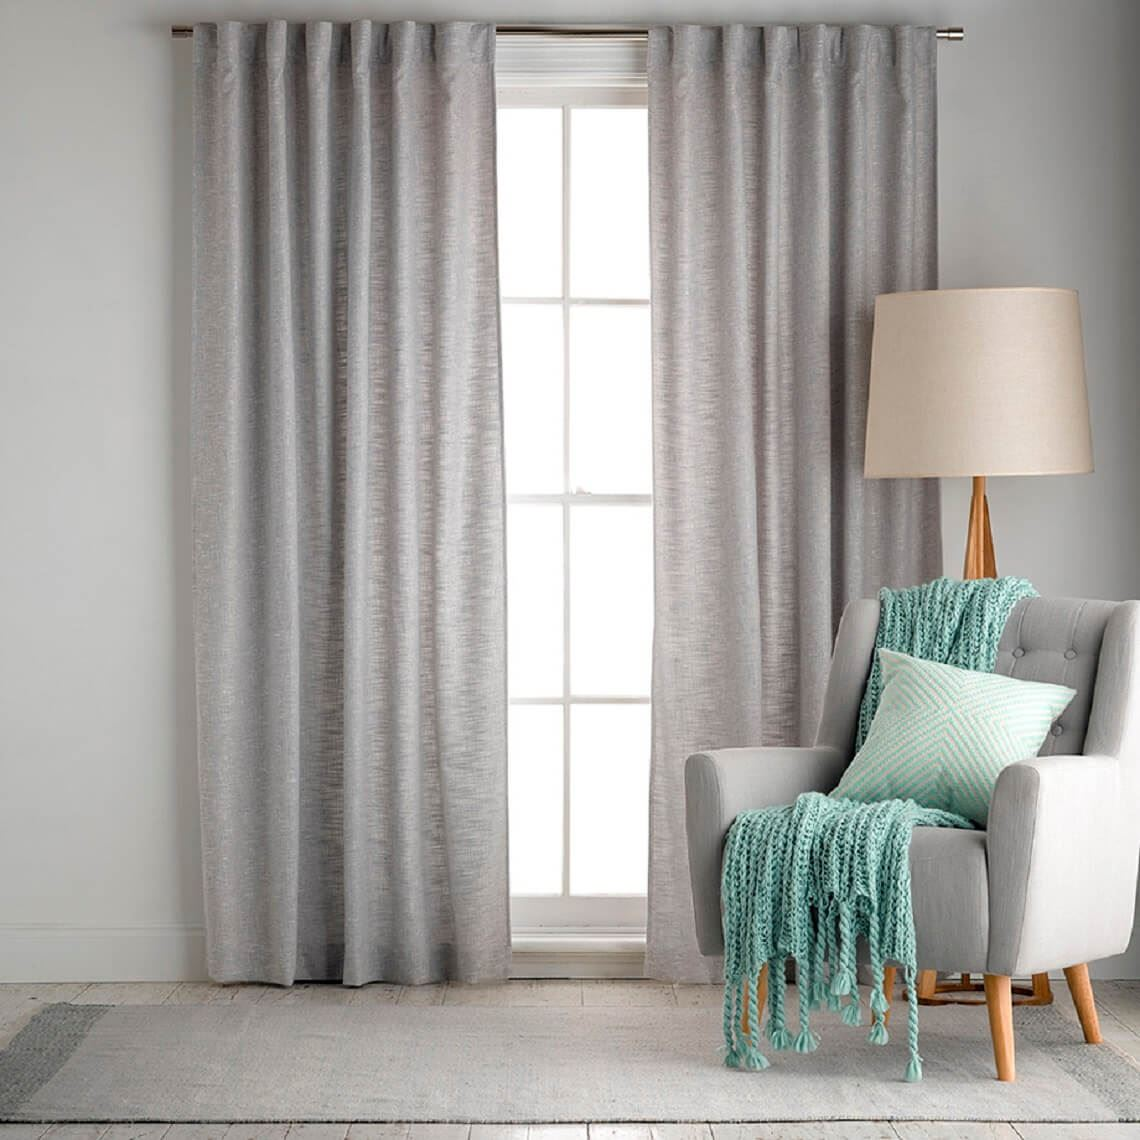 Clarence Lightfilter Concealed Tab Curtain Size W 180cm x D 1cm x H 250cm in Silver 100% Polyester Freedom by Freedom, a Curtains for sale on Style Sourcebook